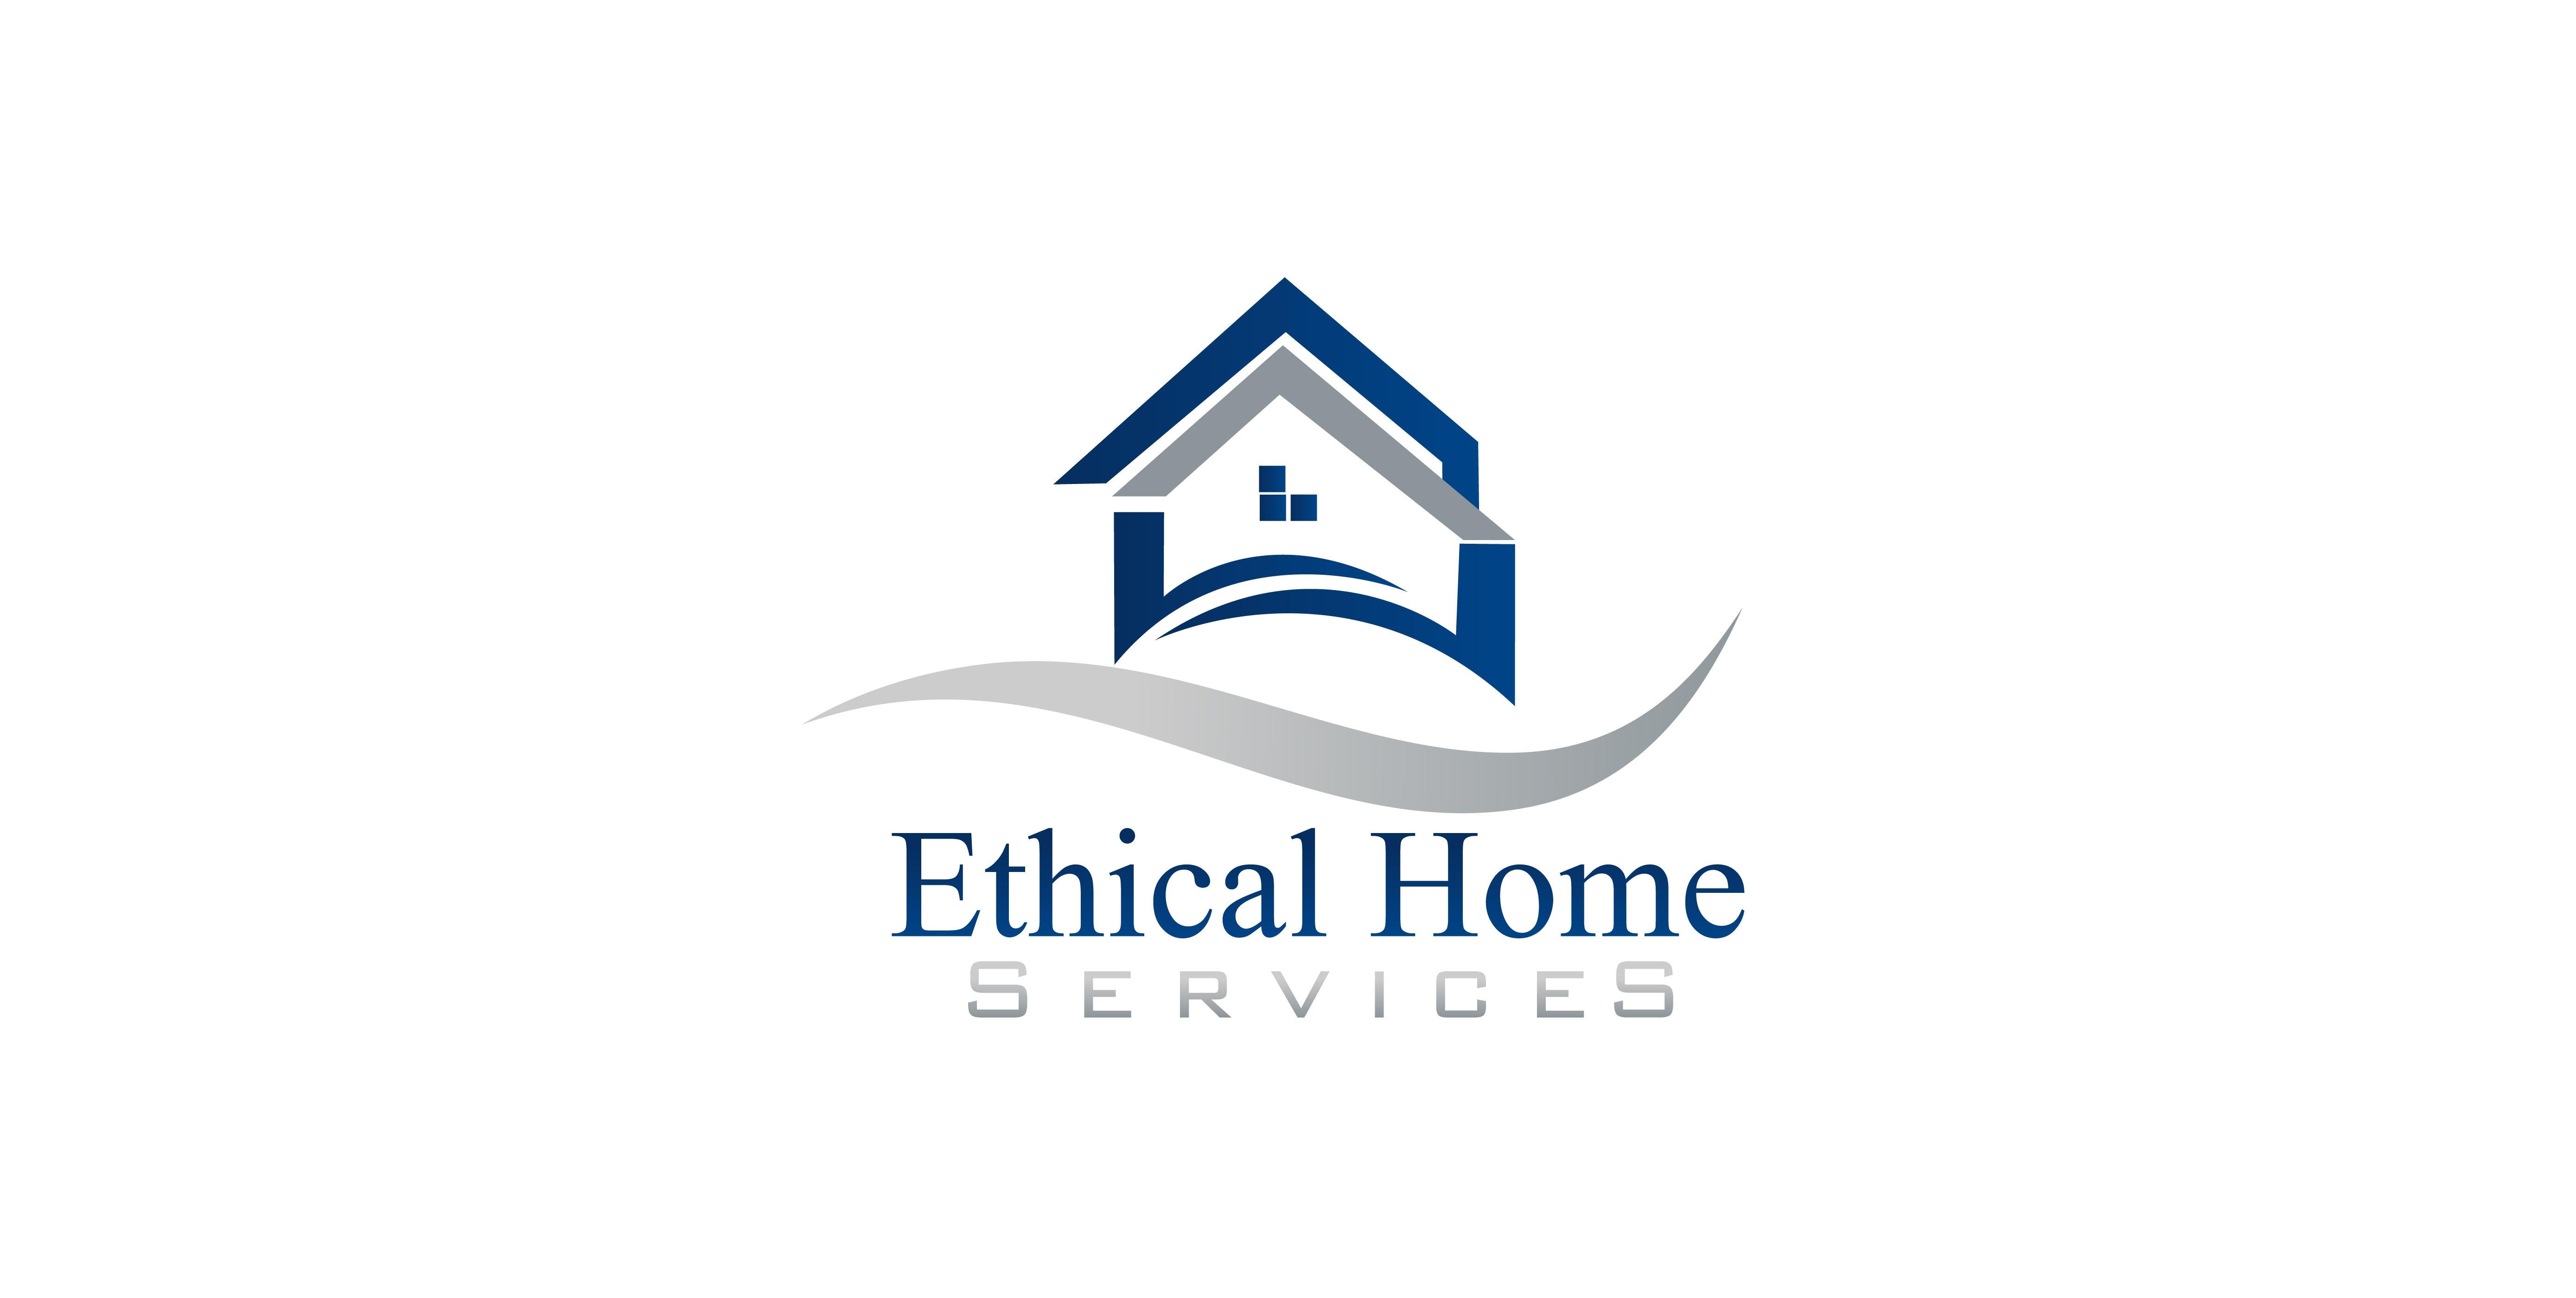 Ethical Home Services company logo